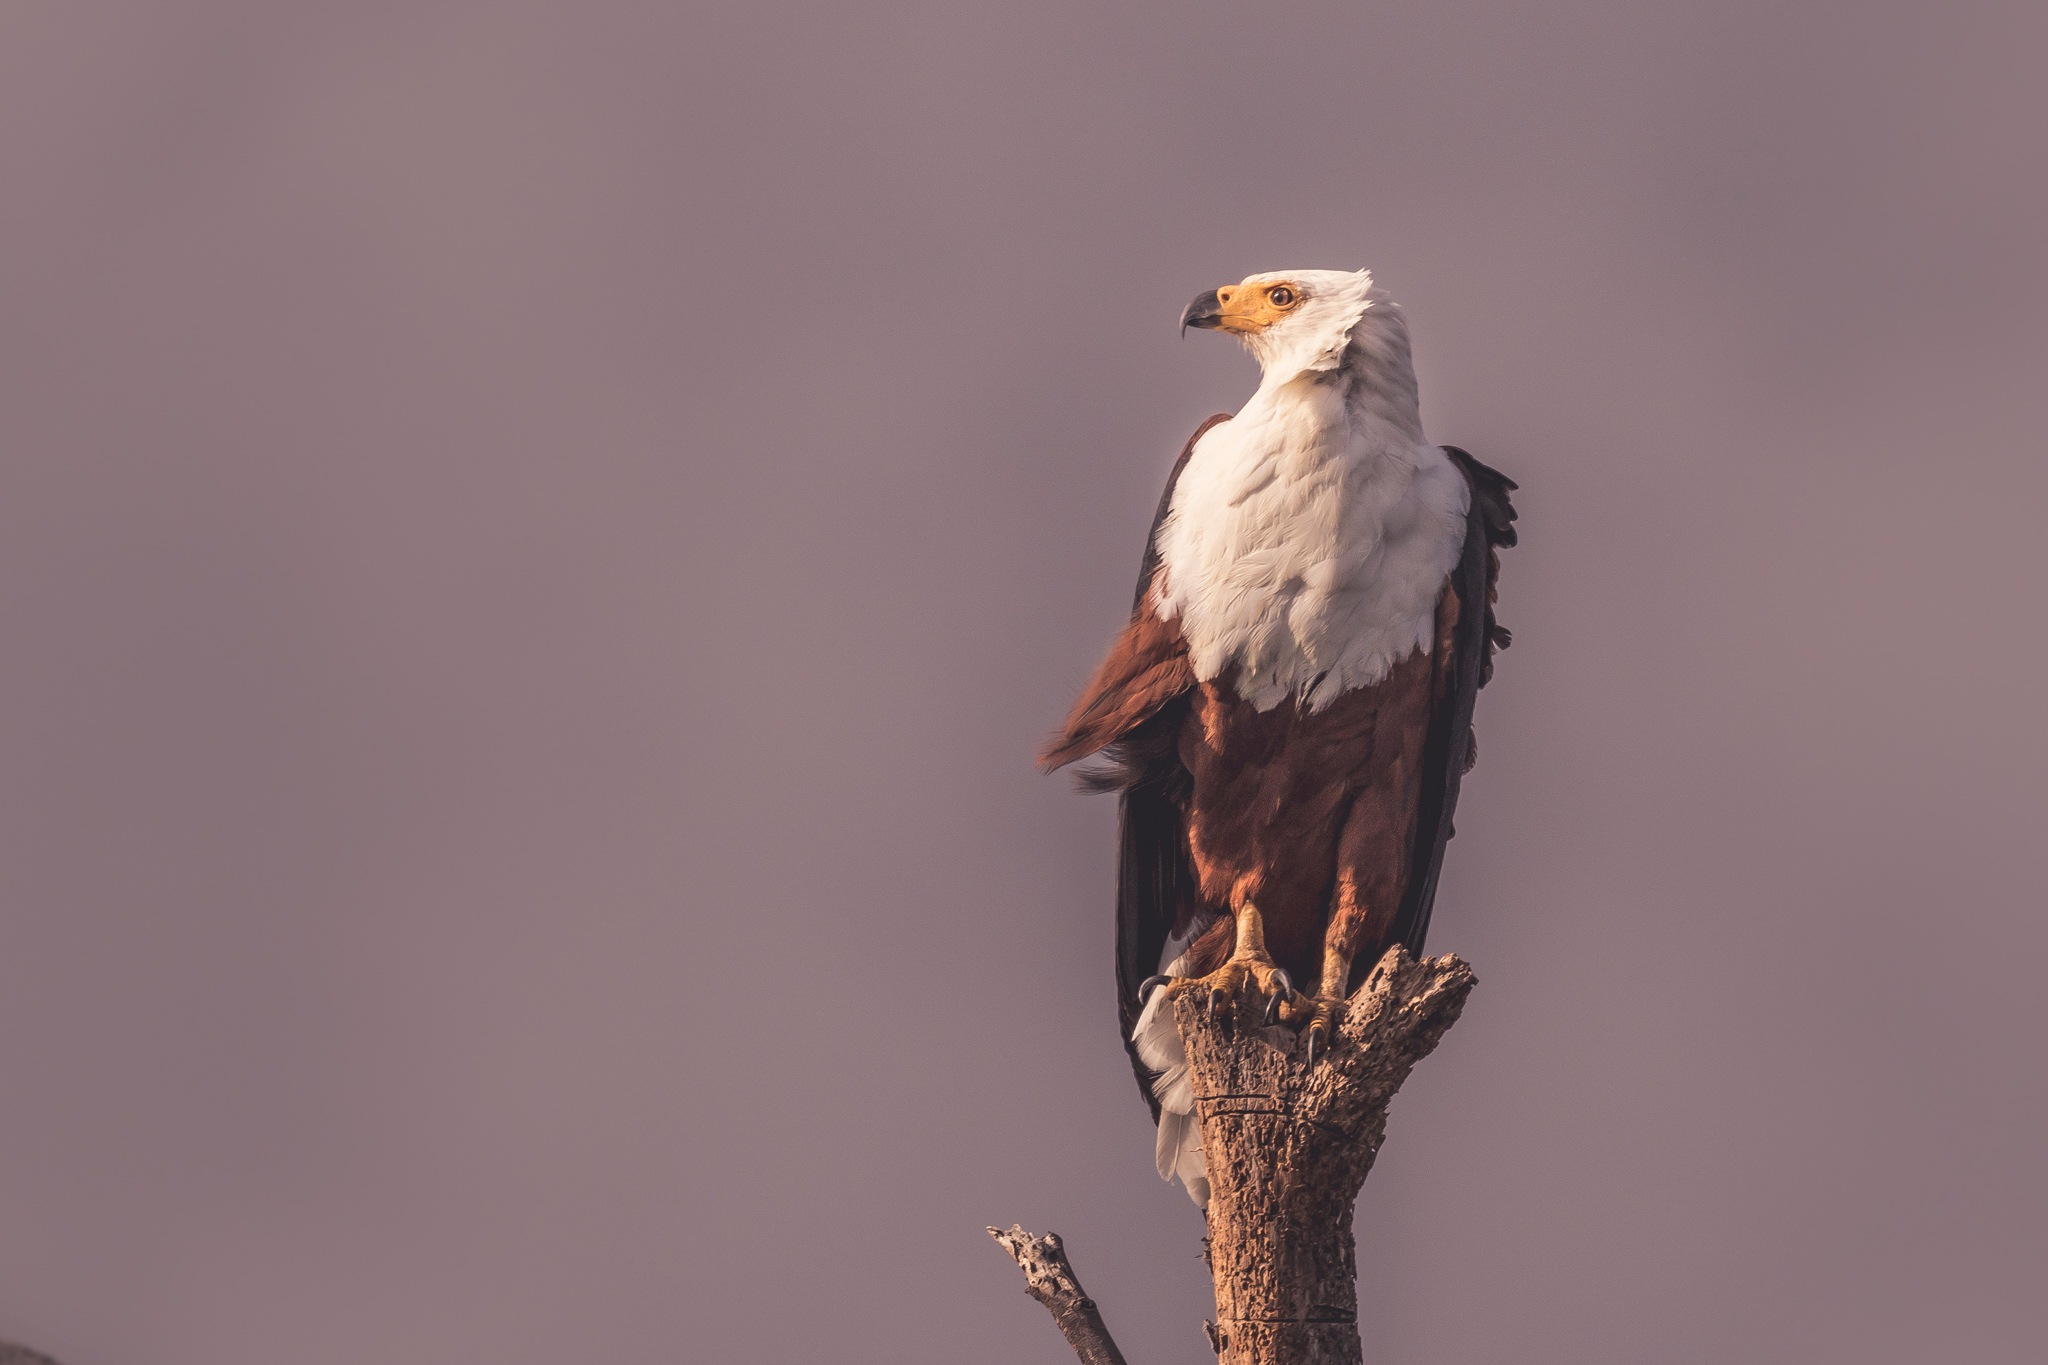 Fish Eagle by sachin sawhney